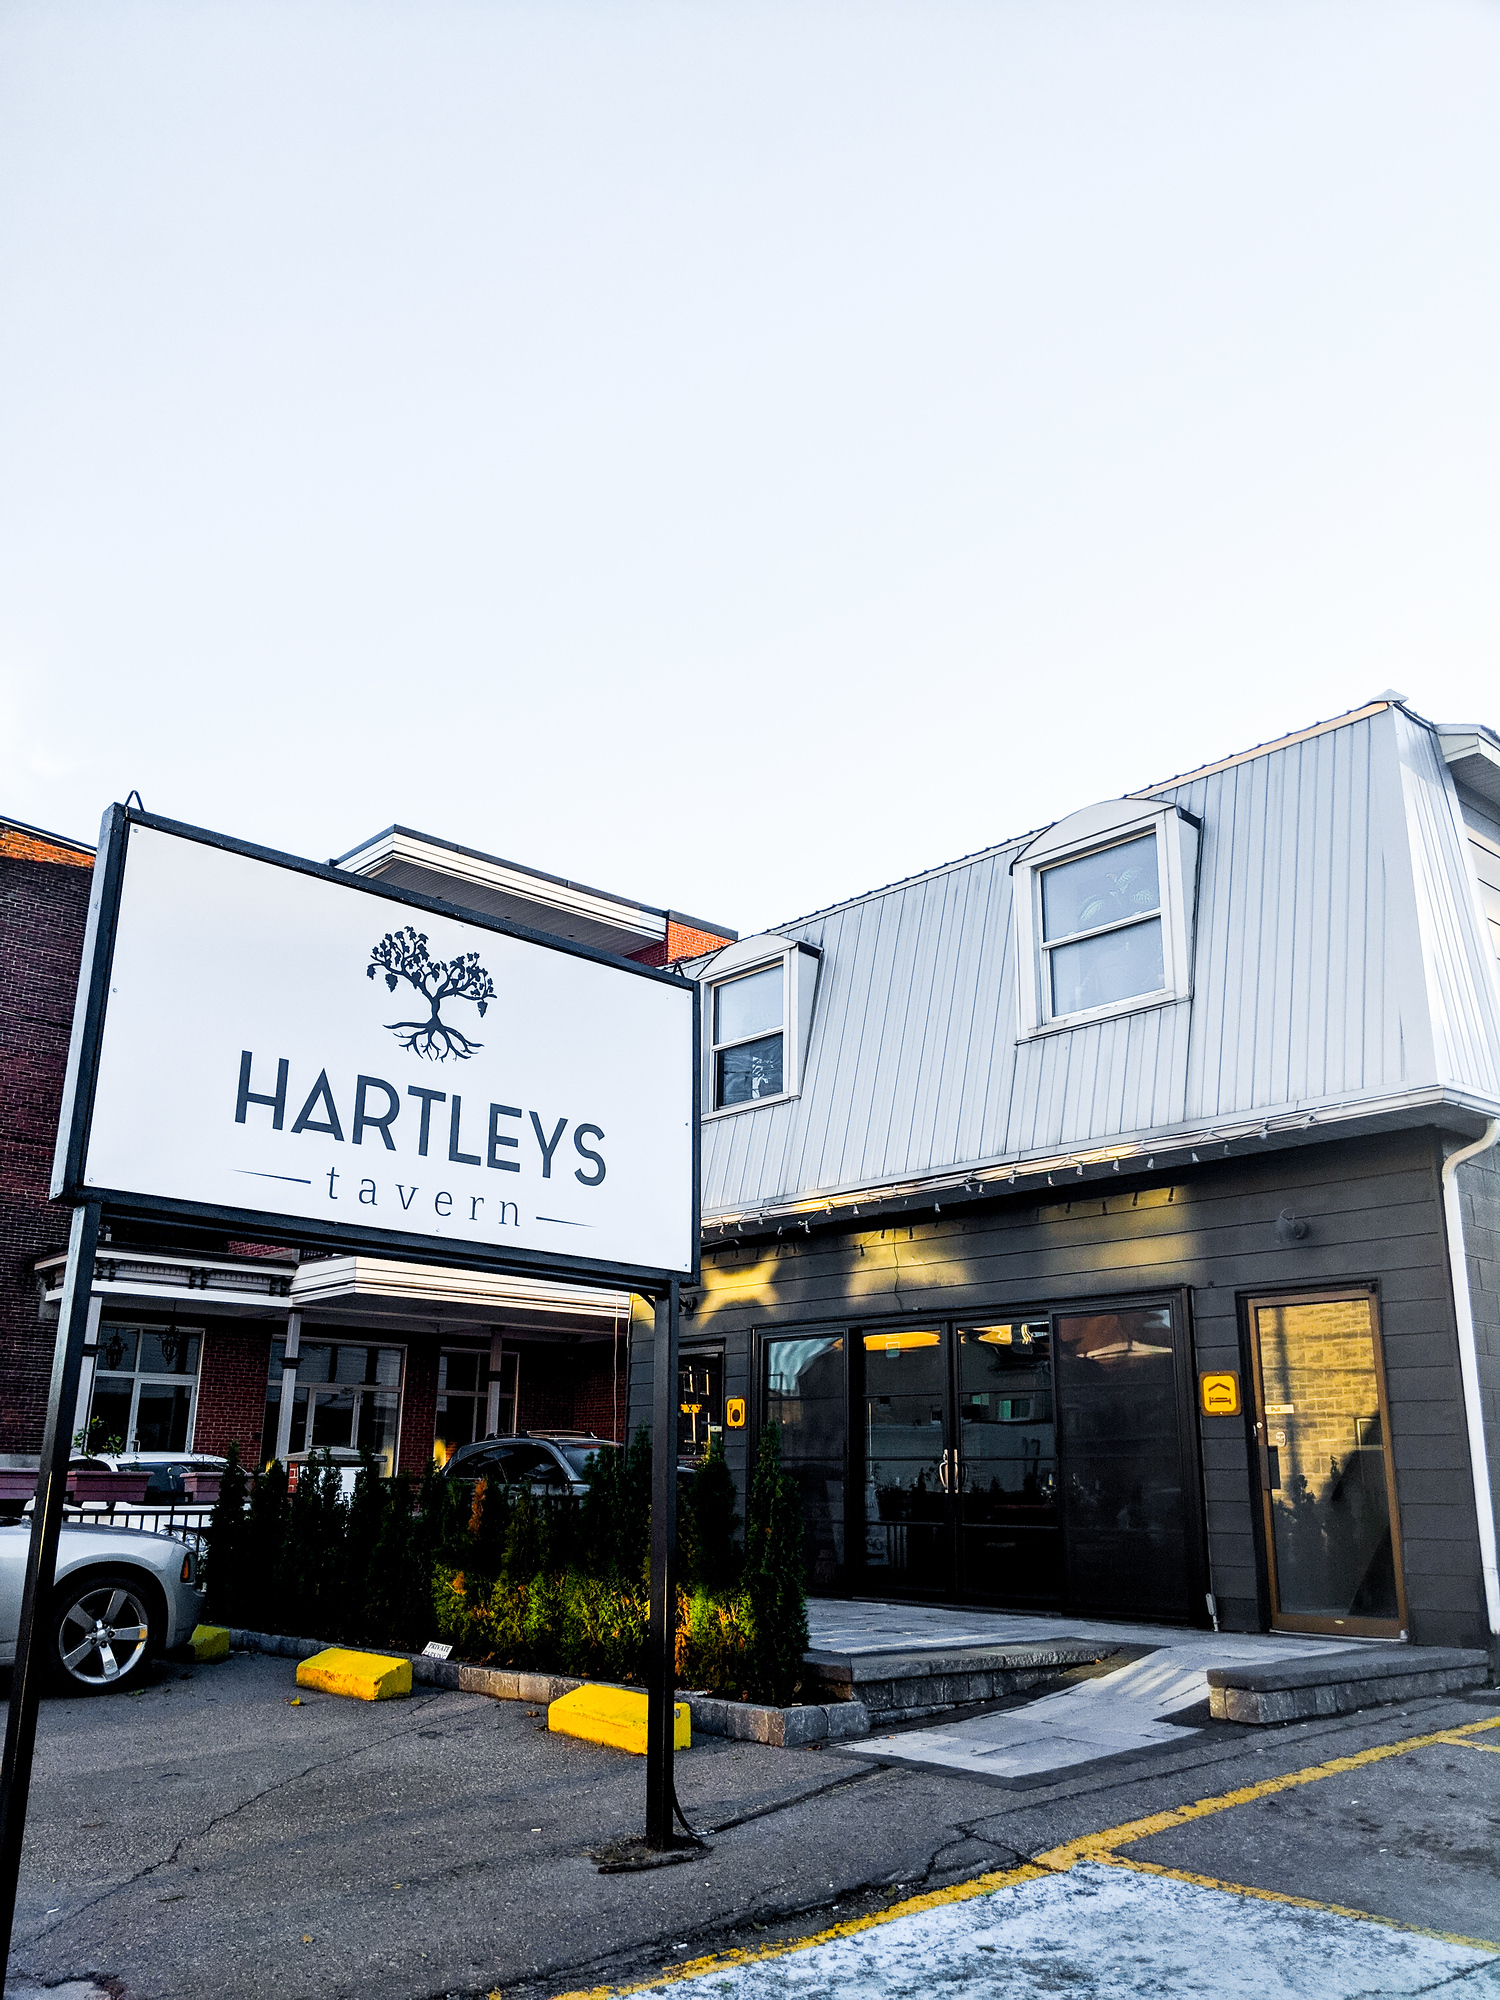 Hartley's Tavern is one of the best Prince Edward County restaurants in Picton, Ontario.